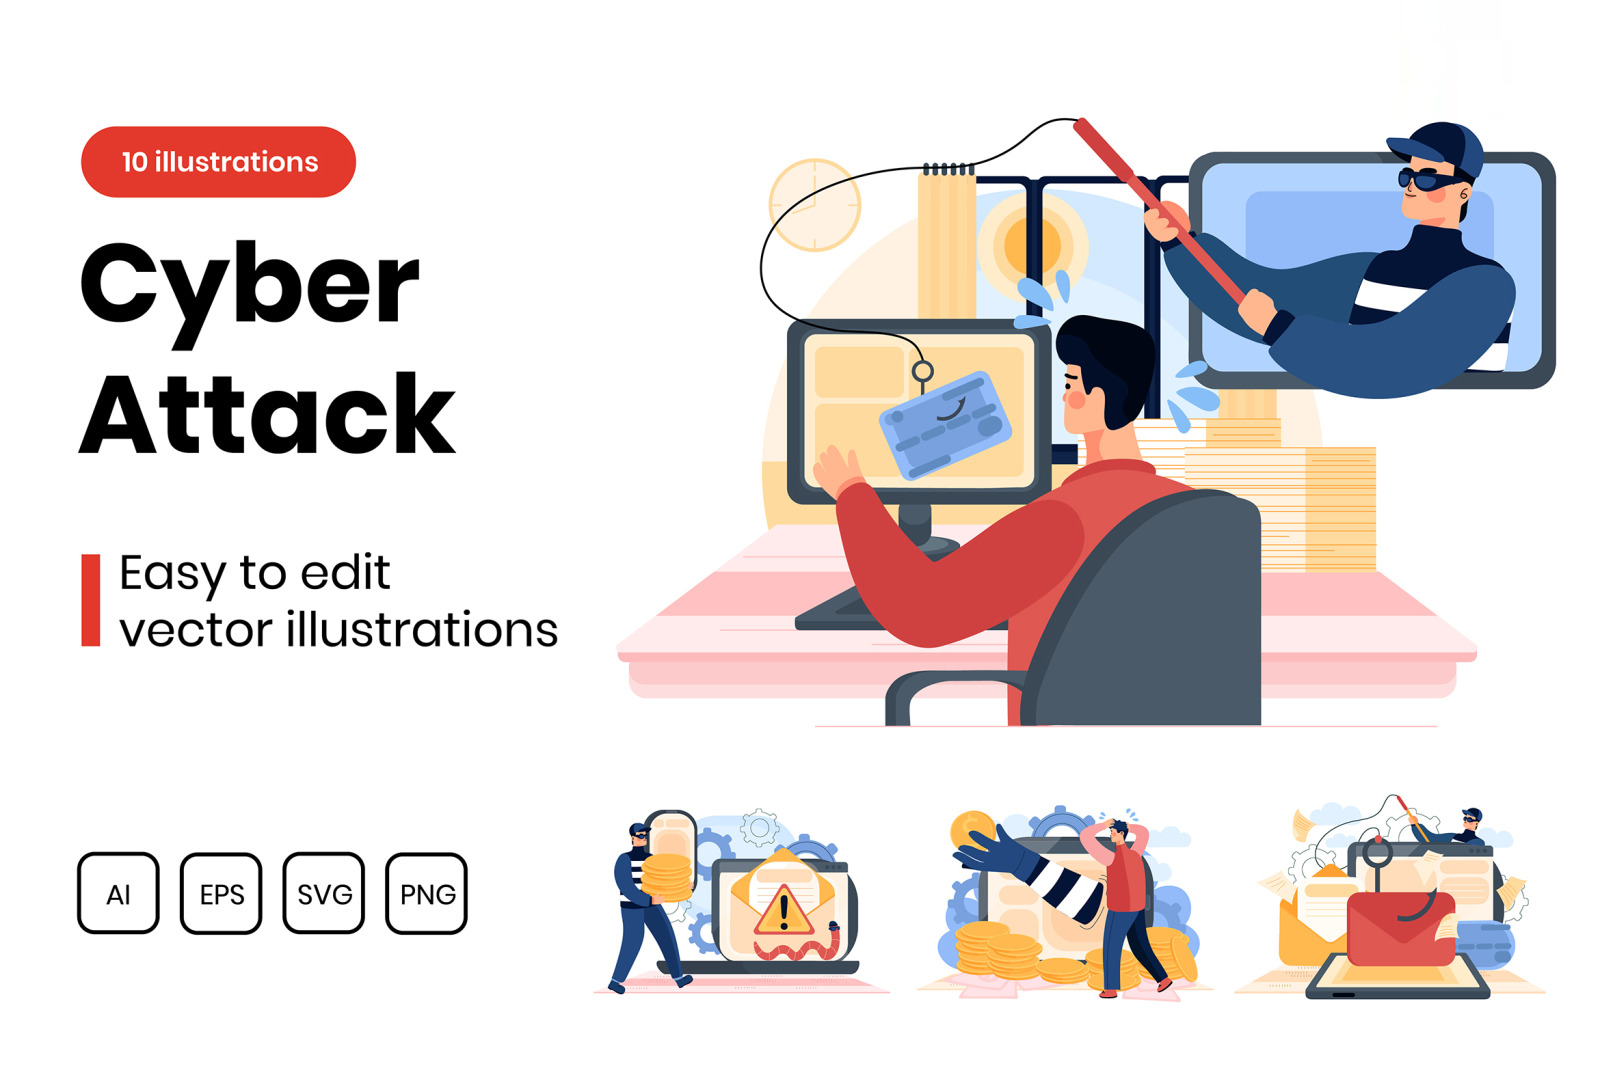 M291_ Cyber Attack Illustrations